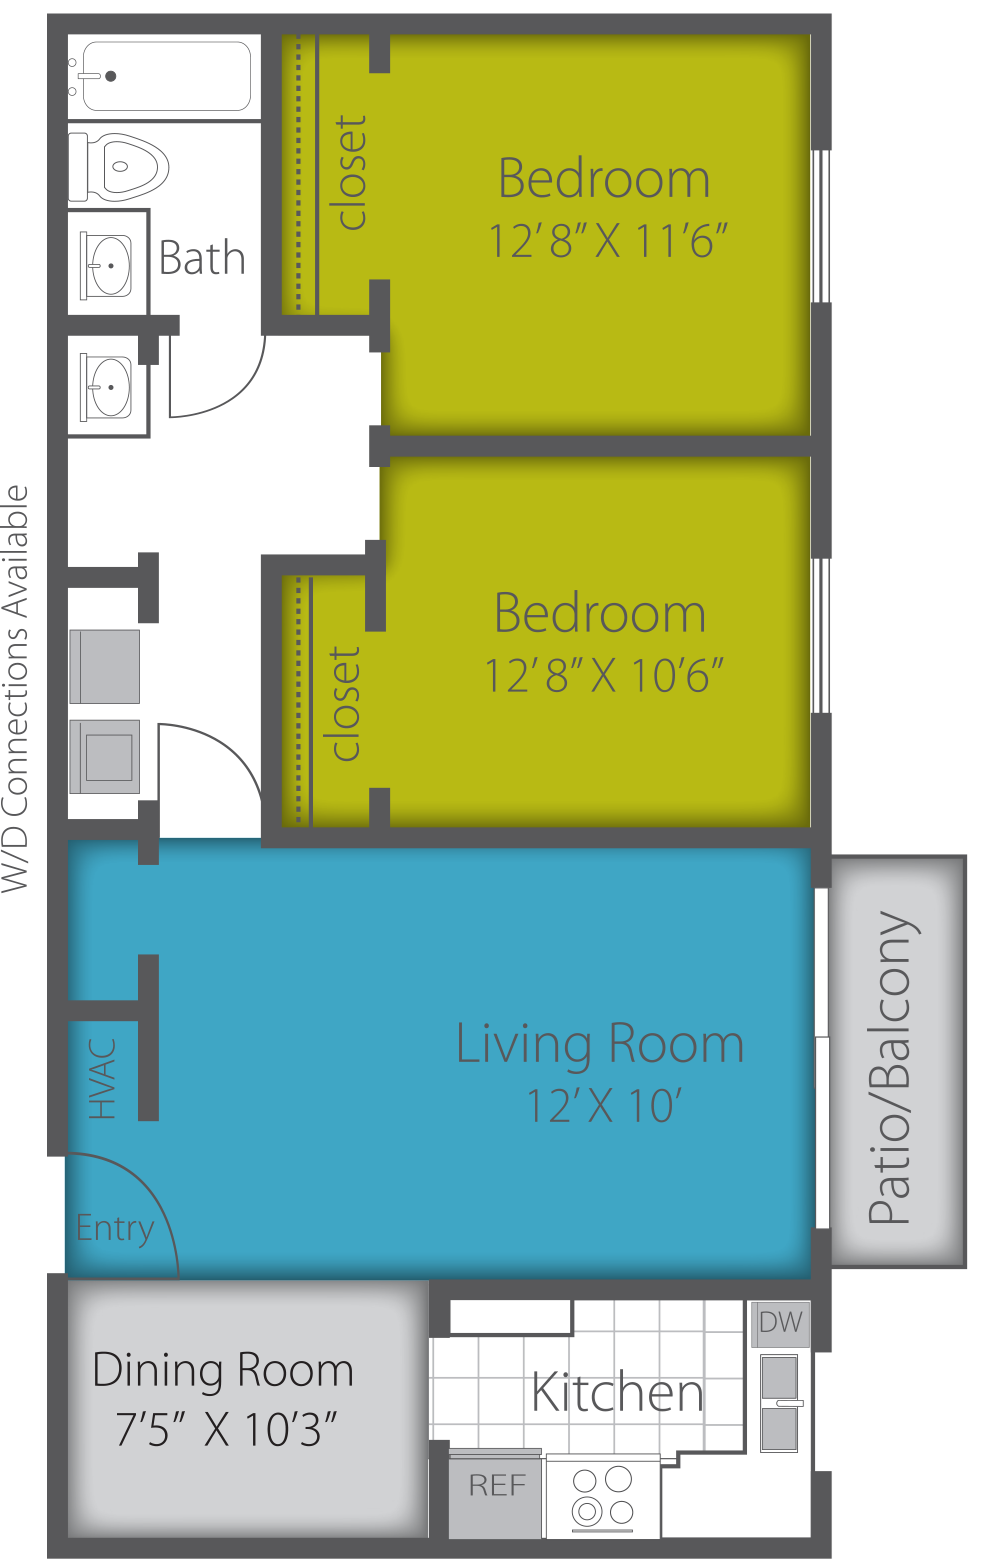 2X1 RENOVATED Floor Plan 6